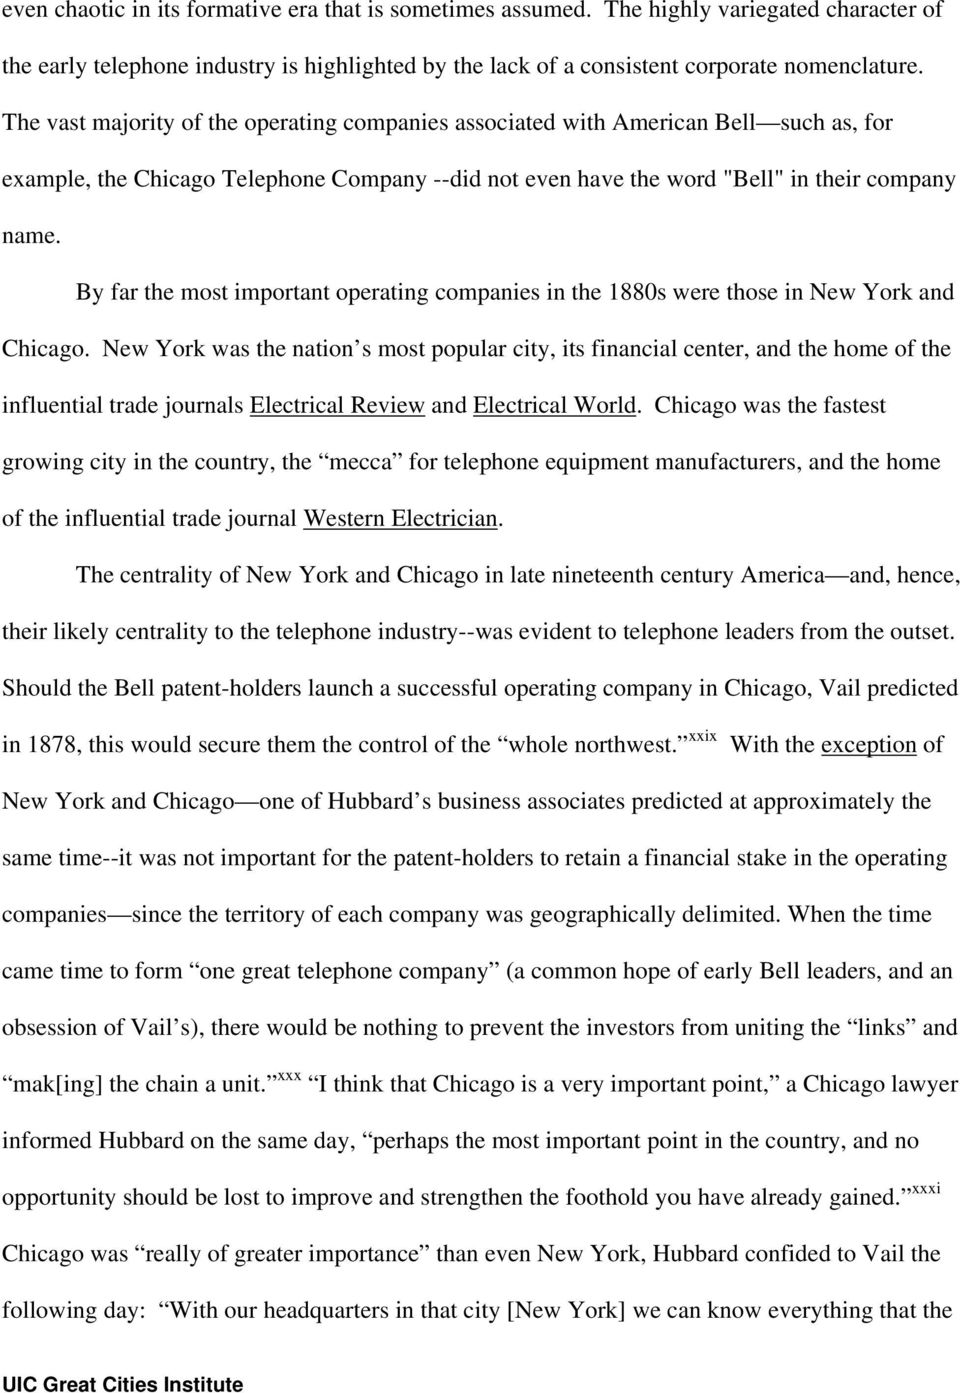 By far the most important operating companies in the 1880s were those in New York and Chicago.